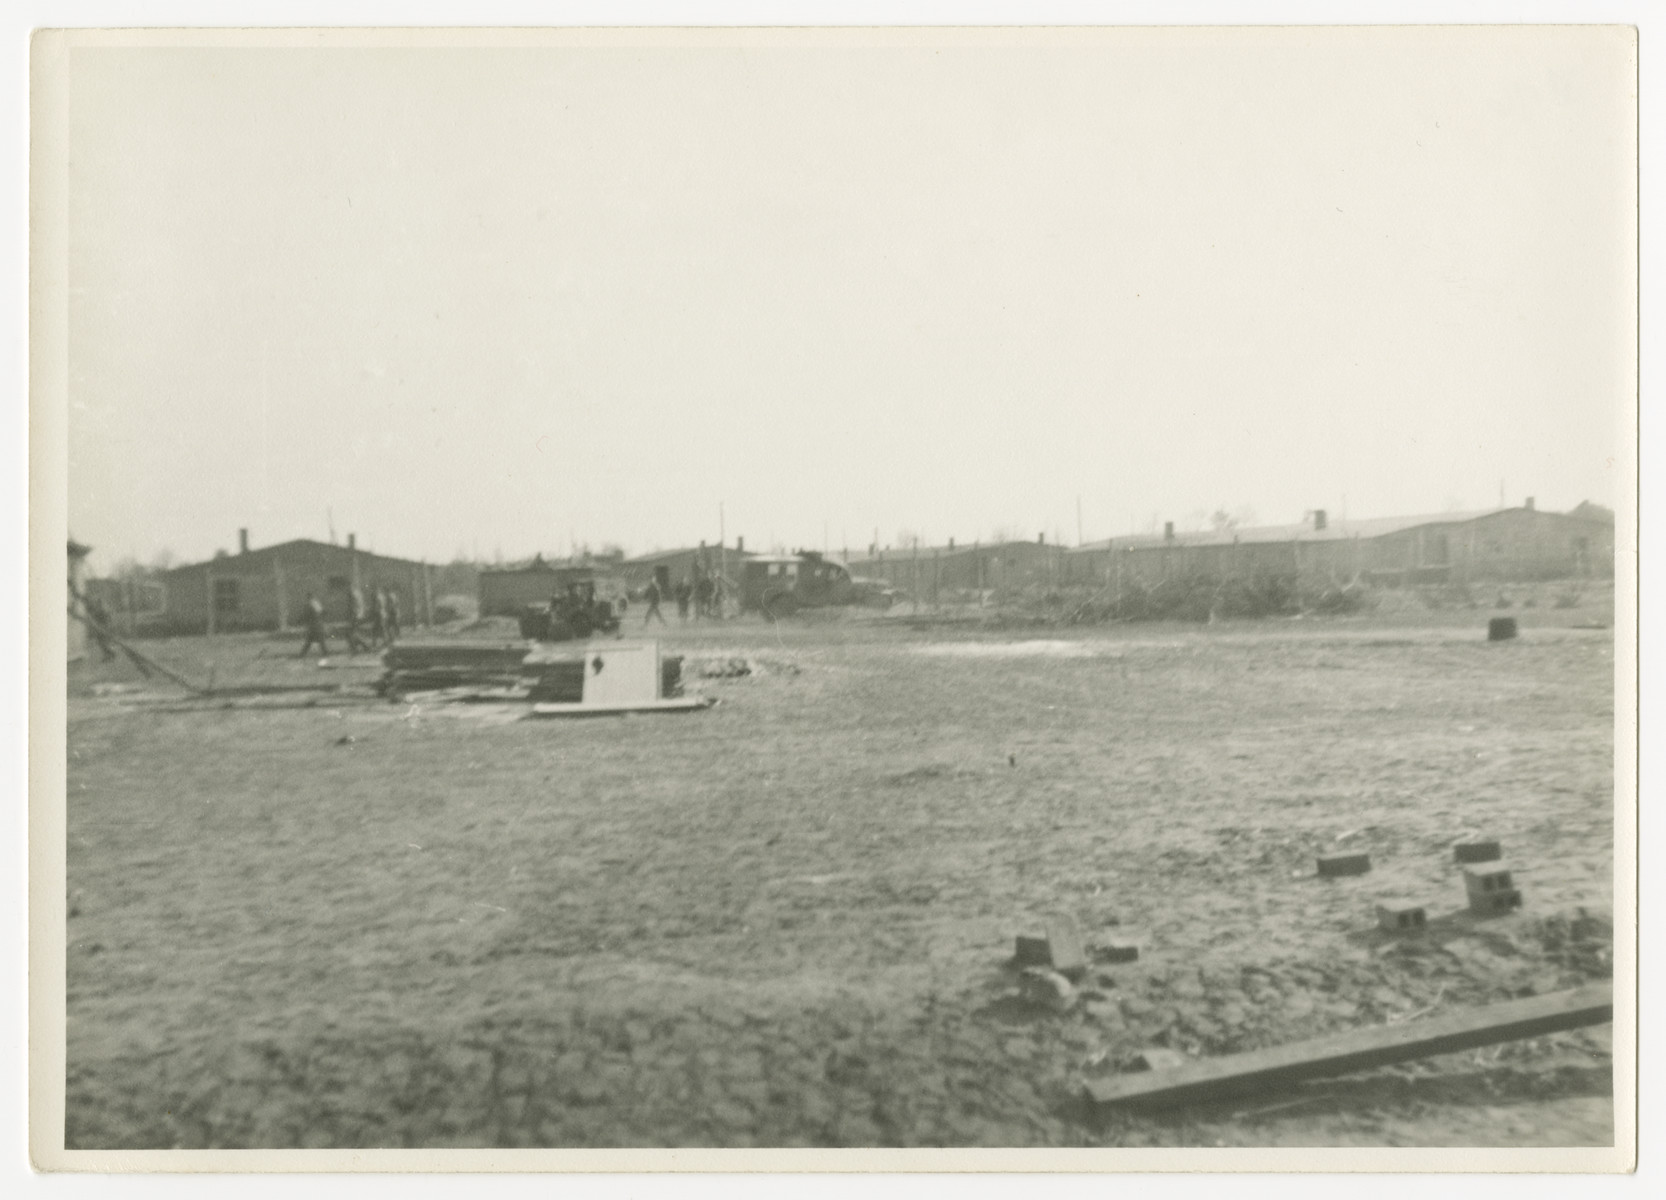 A view of the Woebbelin concentration camp after it was liberated.